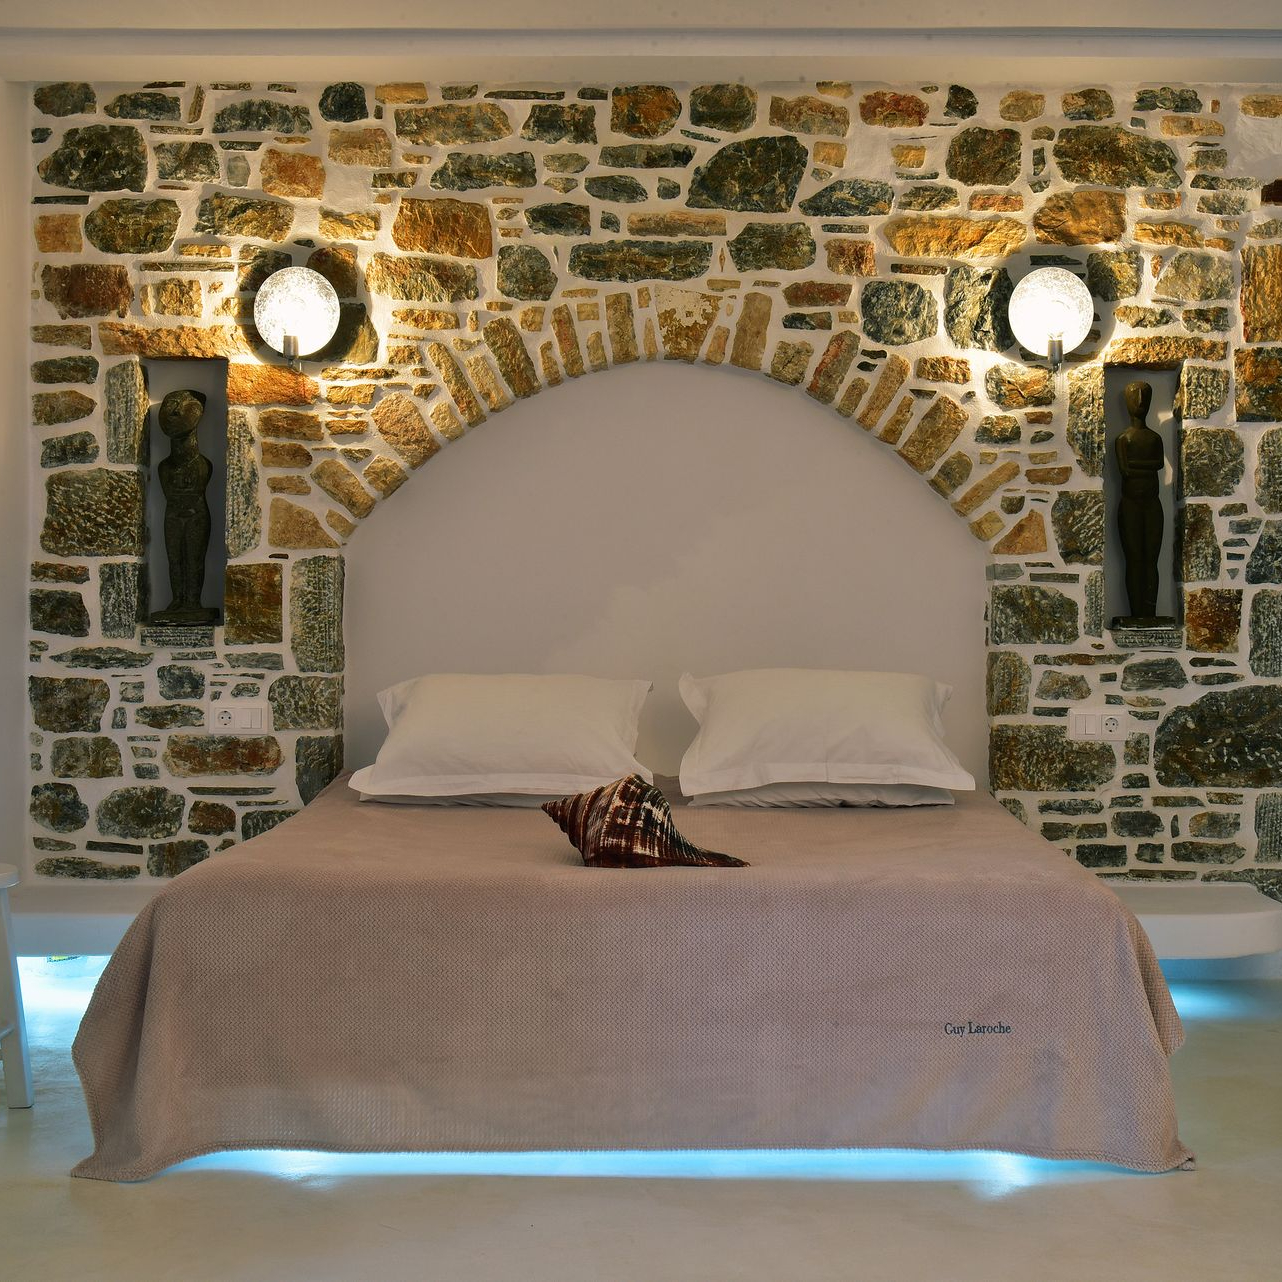 Honeymoon Suite with Private Pool